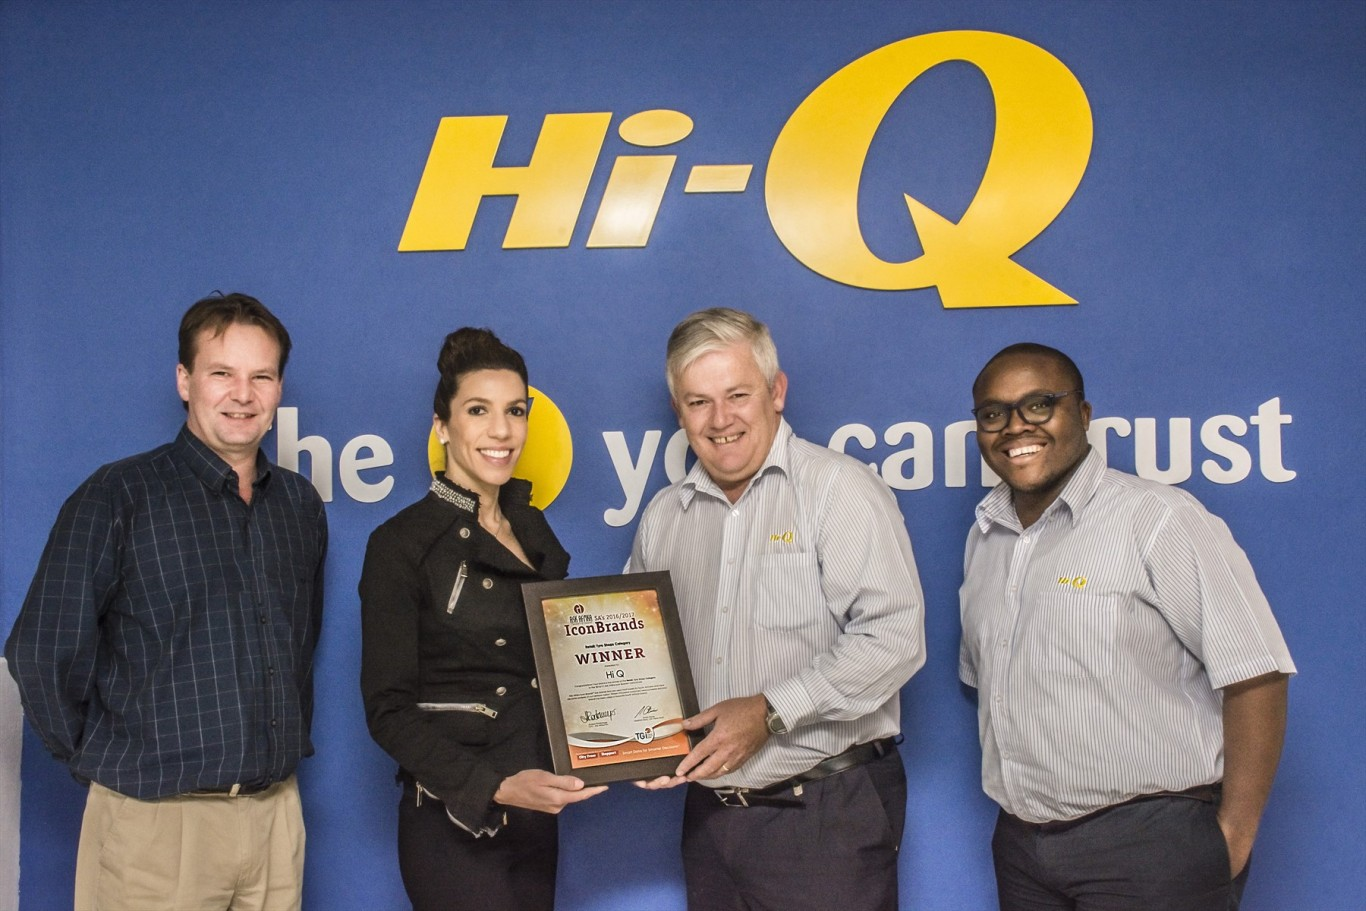 Hi-Q voted South Africa's No.1 Tyre Retailer in Icon Brands Survey